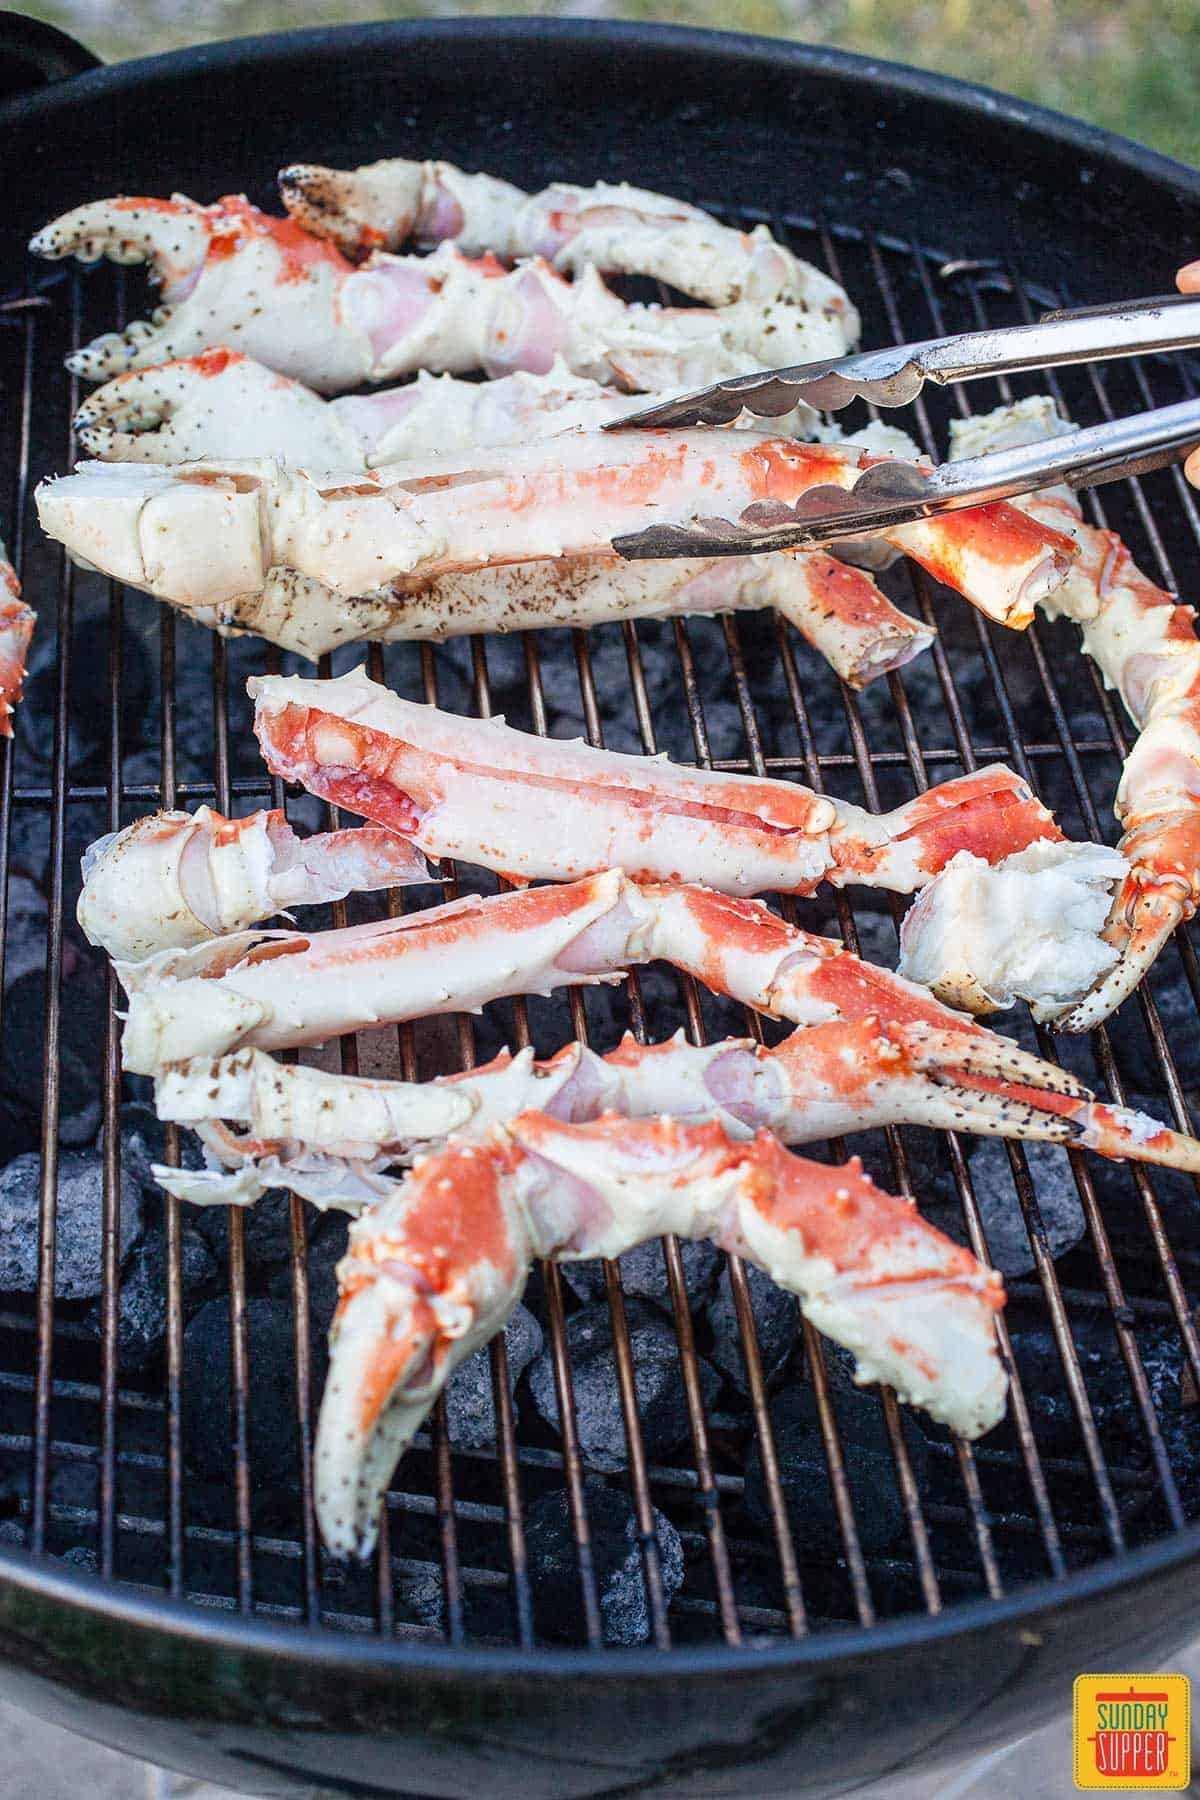 Lifting crab legs off the grill over with some tongs